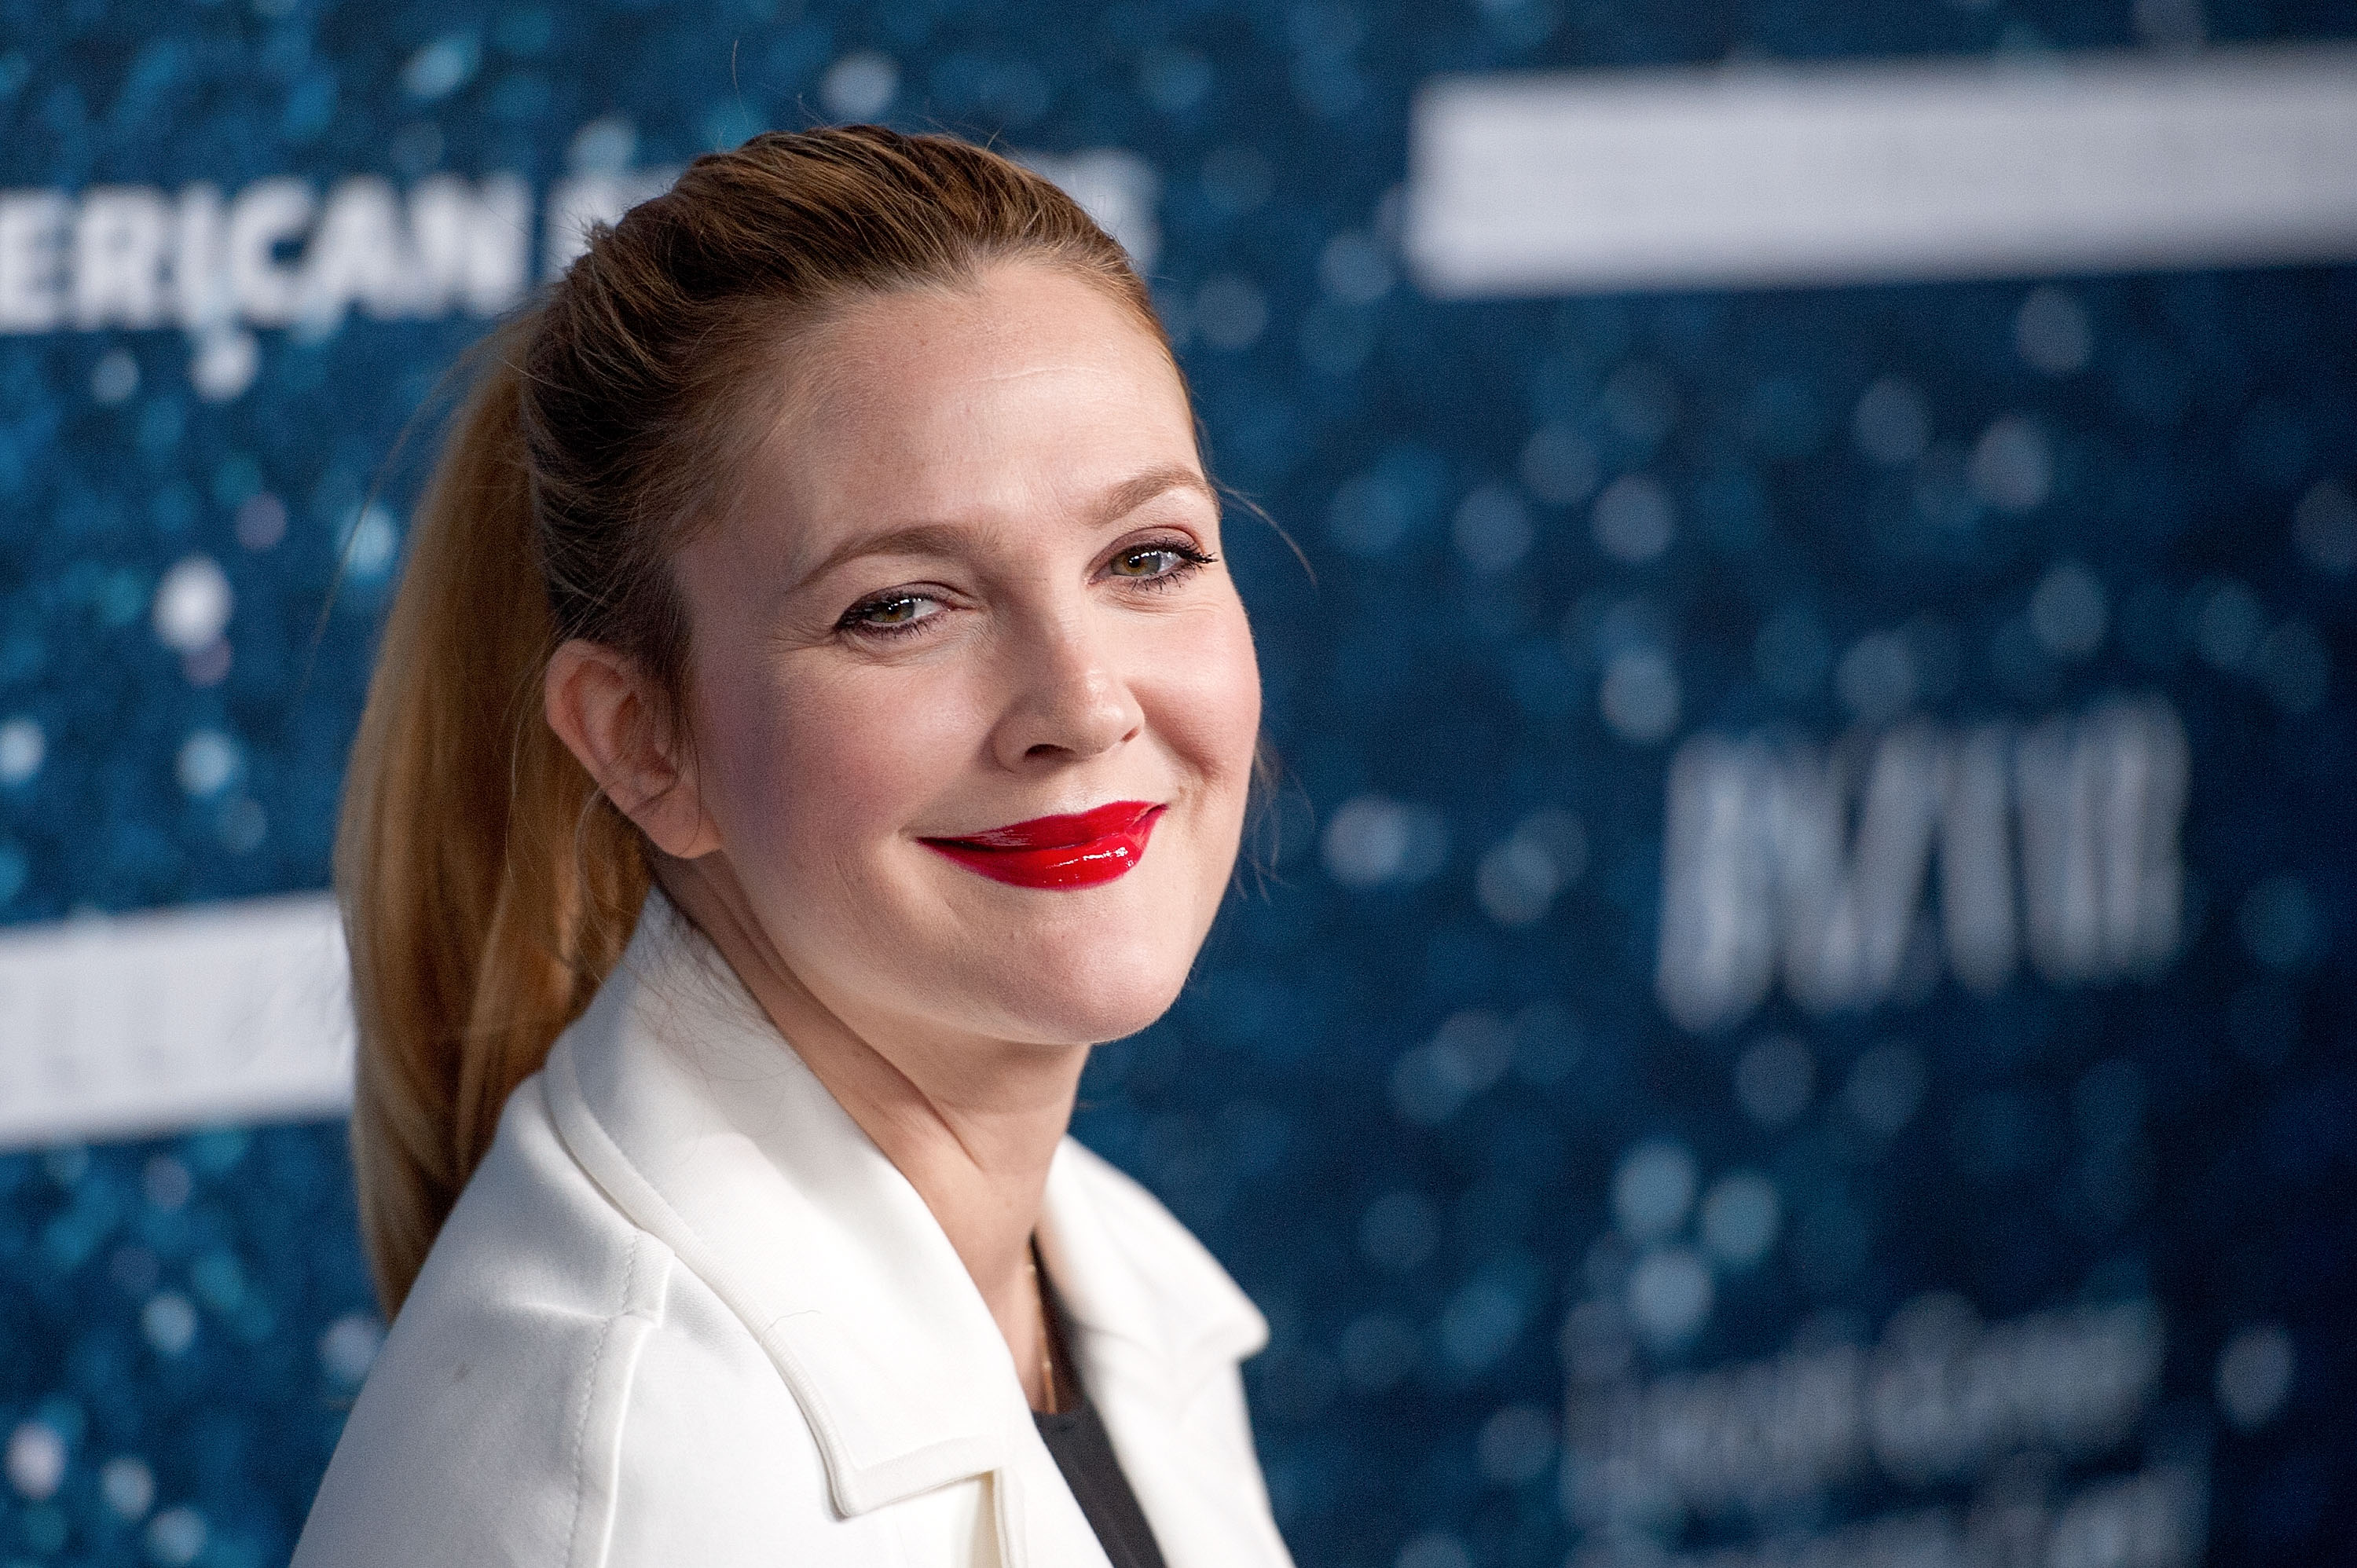 Drew Barrymore attends the 2014 Women's Leadership Award Honoring Stella McCartney at Alice Tully Hall at Lincoln Center on November 13, 2014 in New York City. | Photo: GettyImages